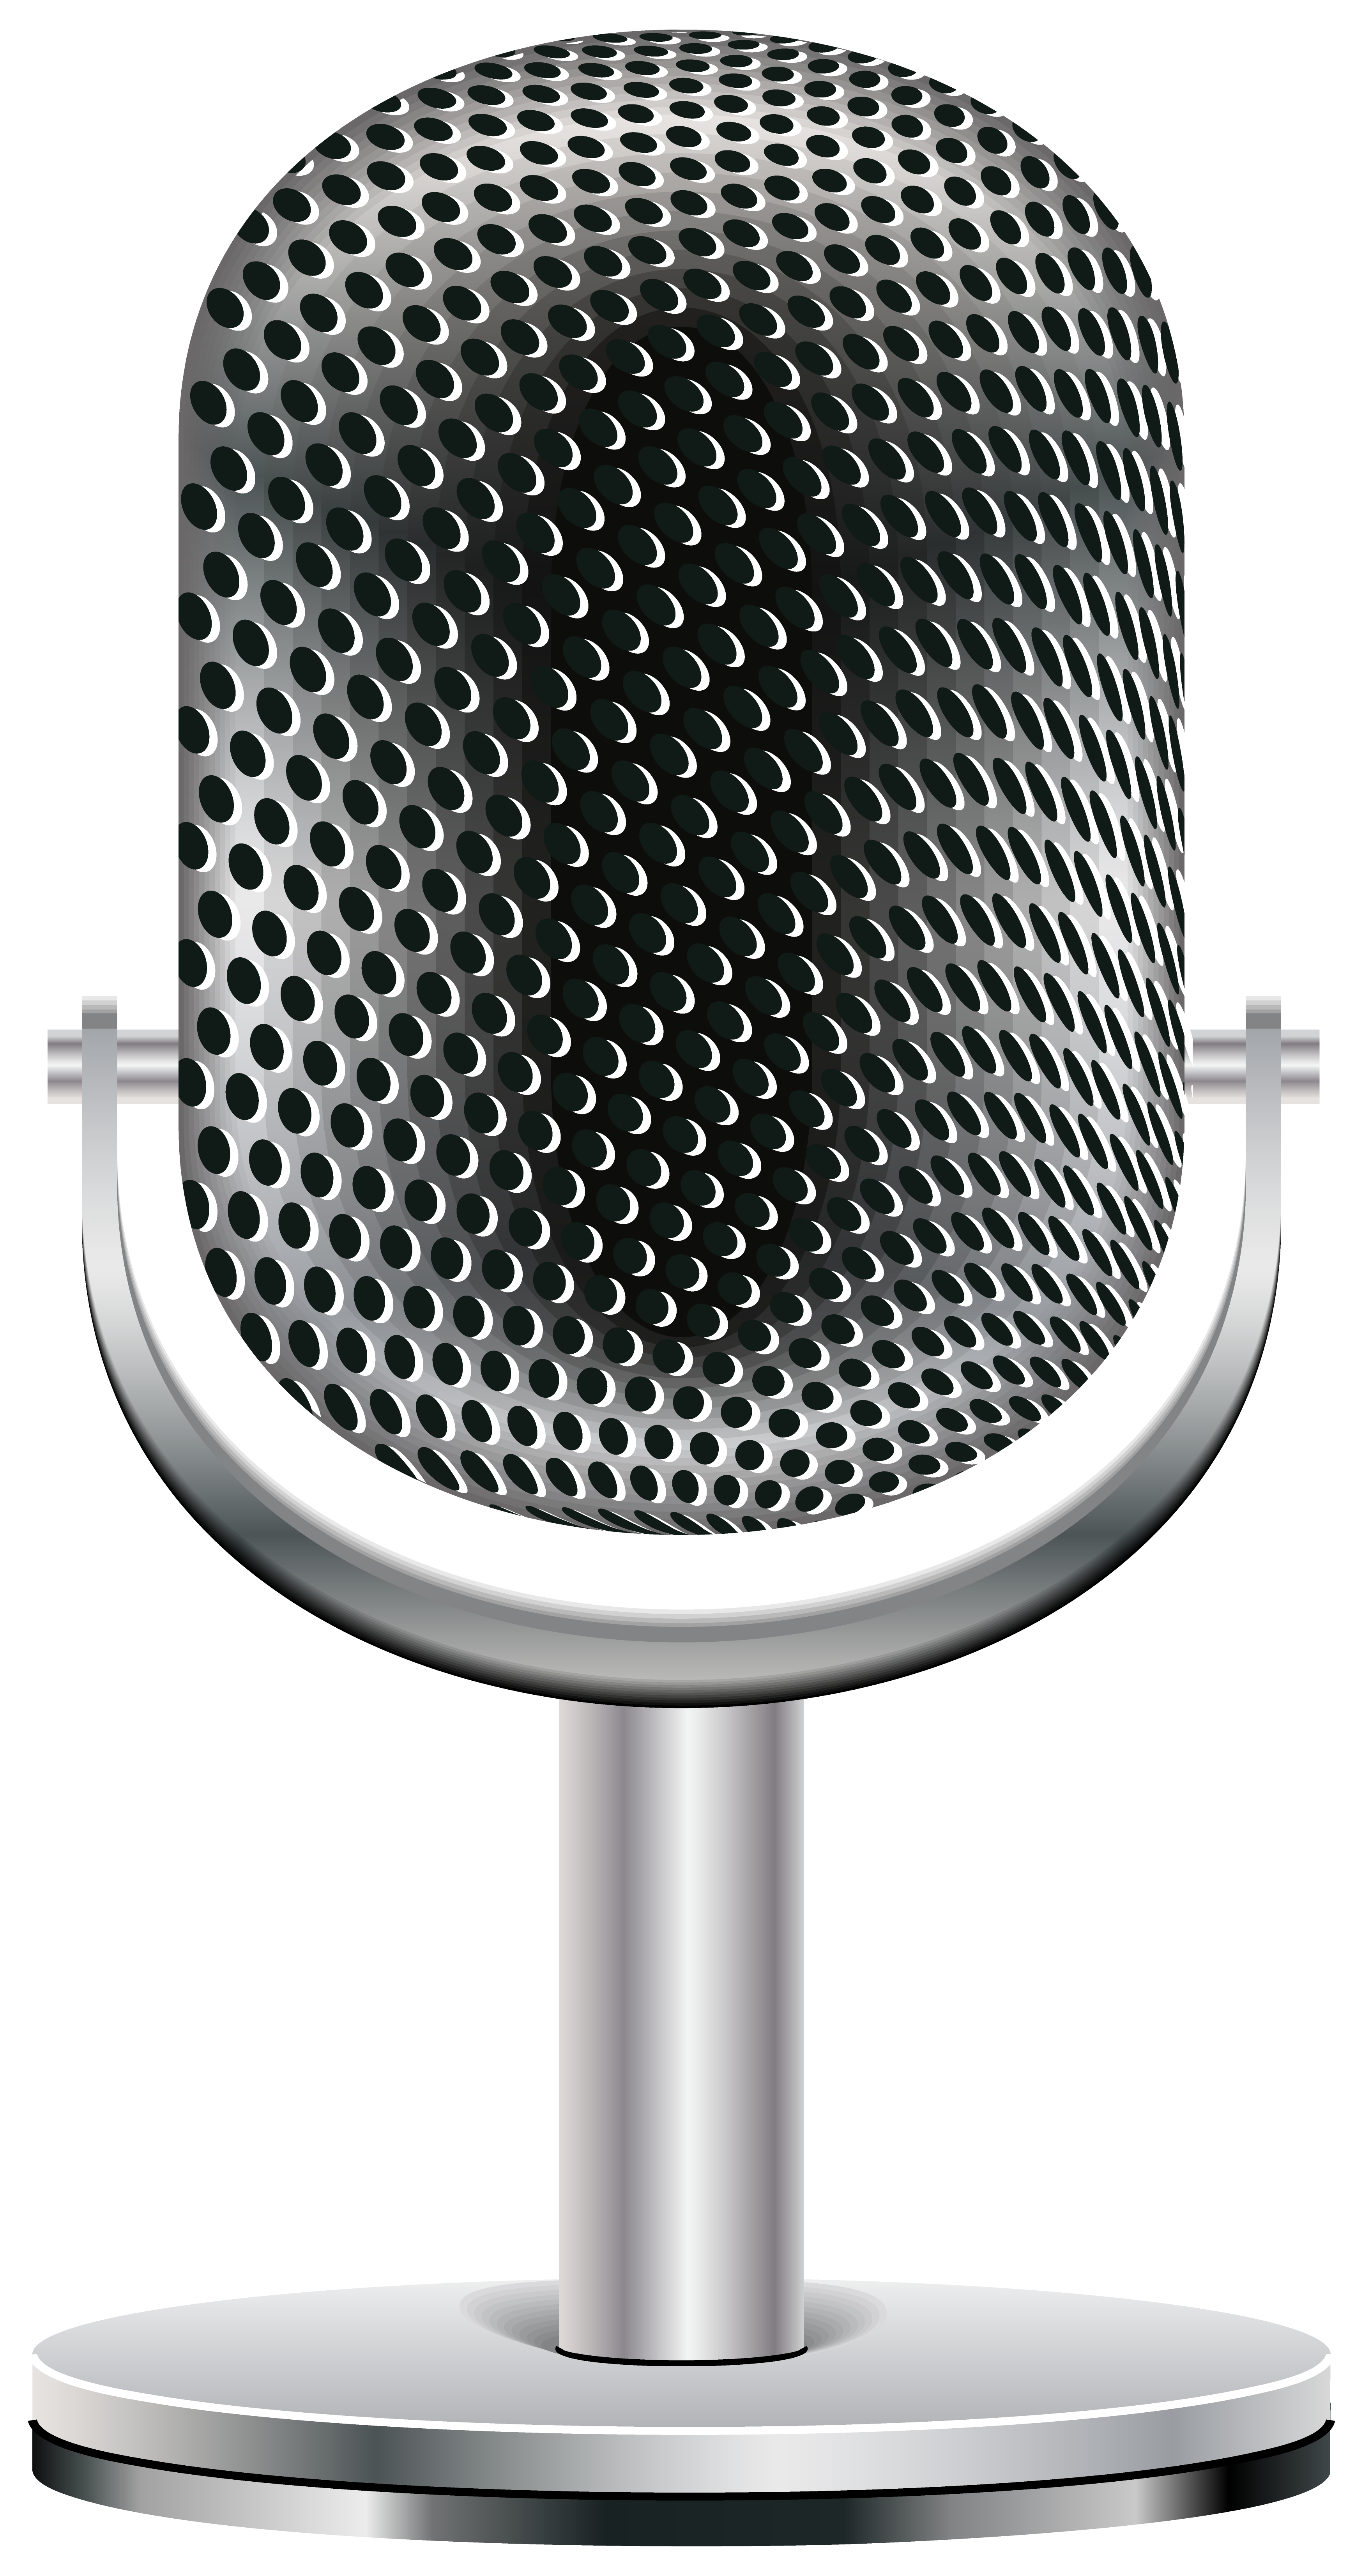 Microphone transparent png. Clip art image gallery